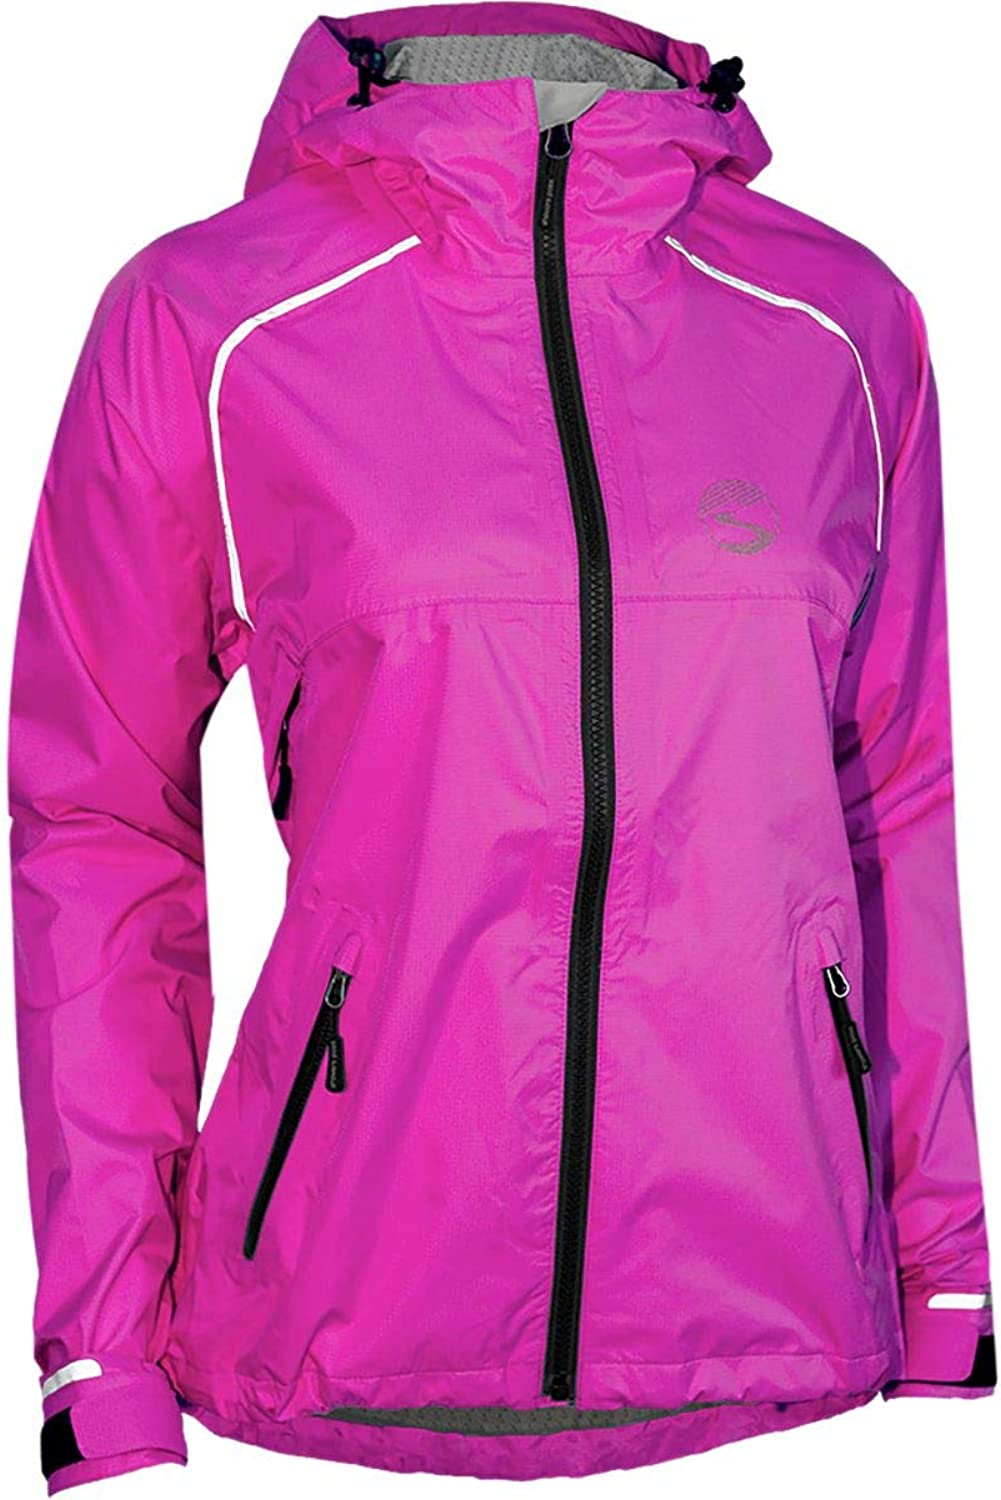 Showers Pass Women's Syncline Jacket